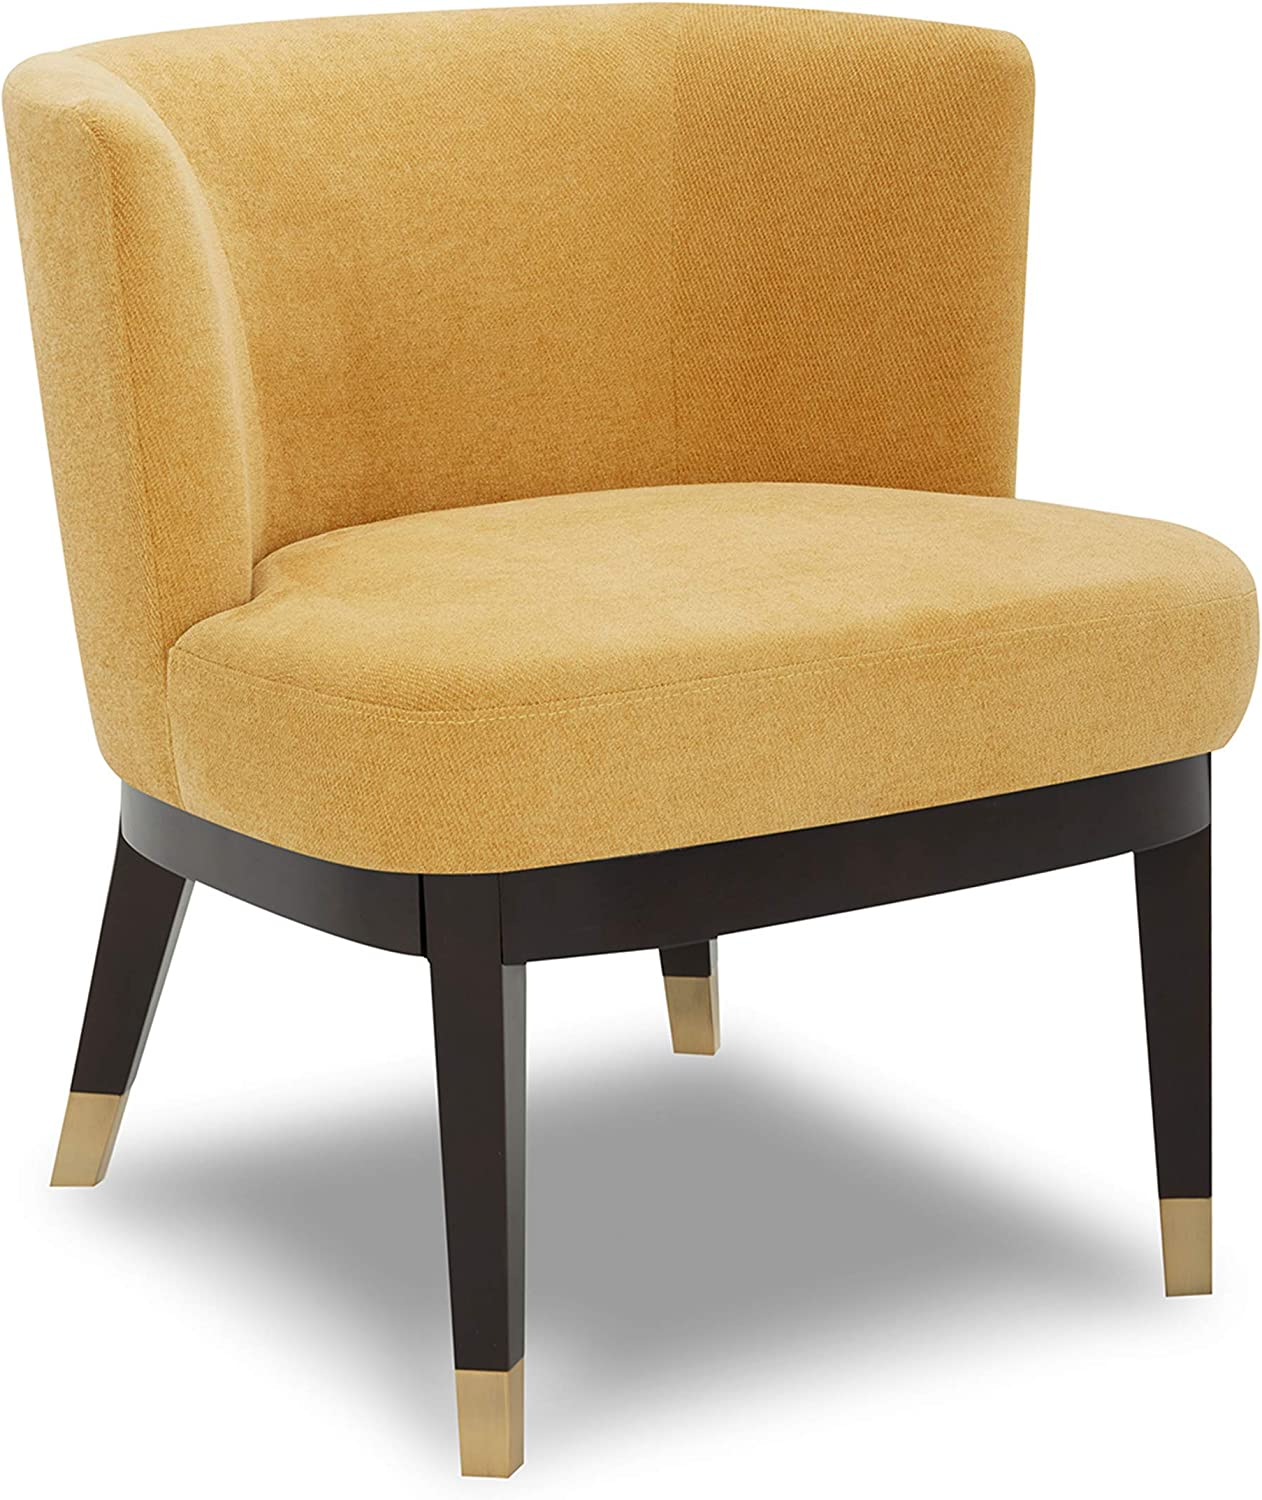 CHITA Mid-Century Max 88% OFF Modern Fabric Living Popular shop is the lowest price challenge Upholstered Chair Accent